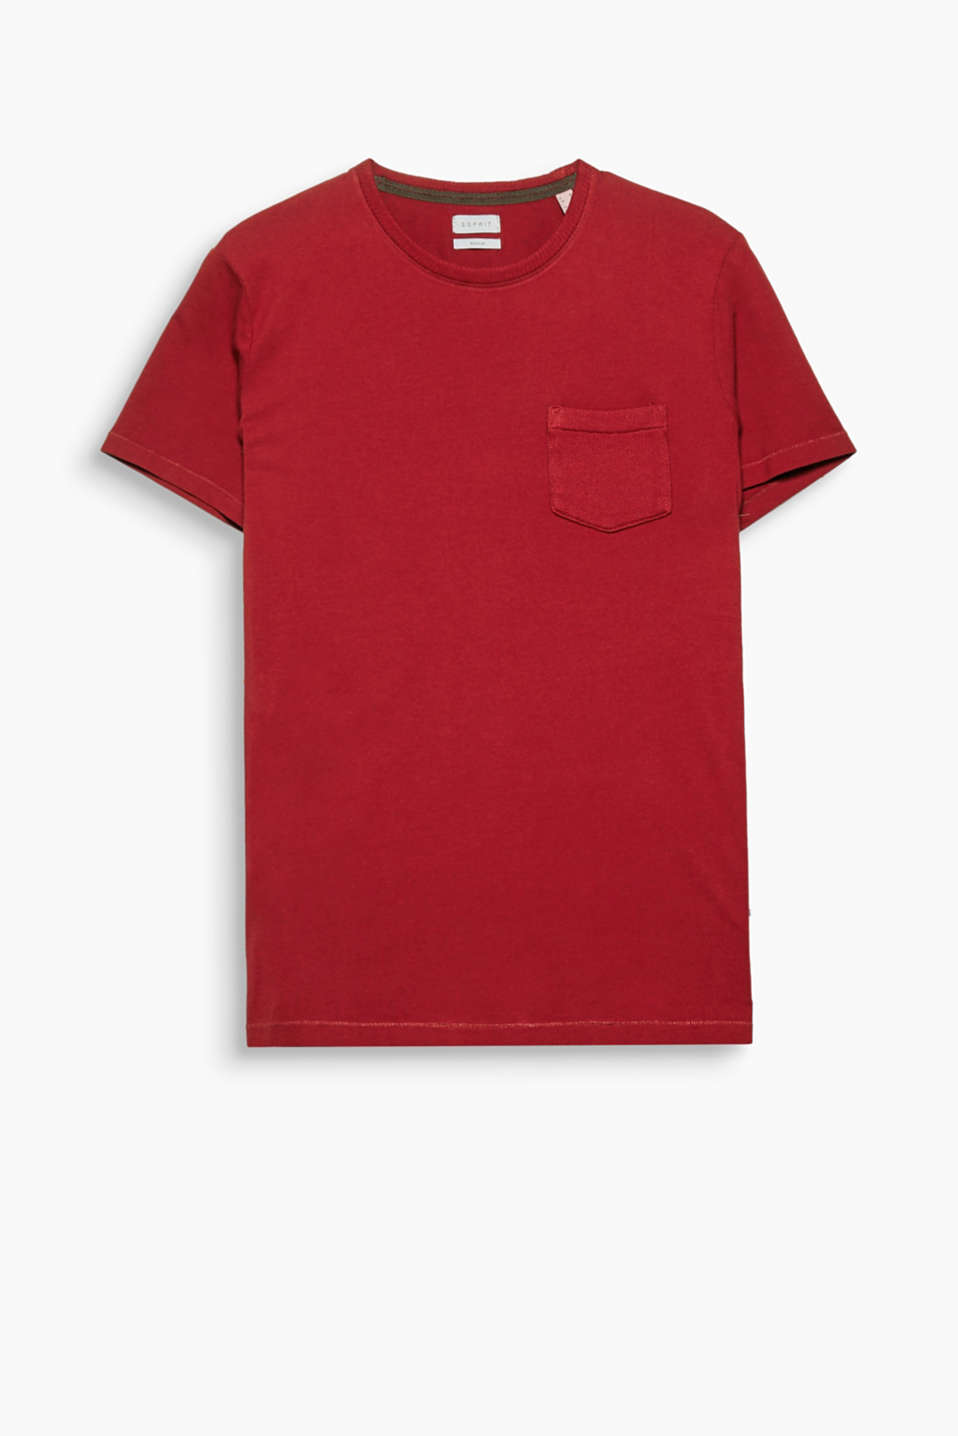 A basic with a twist: this round neck T-shirt with a knit breast pocket.